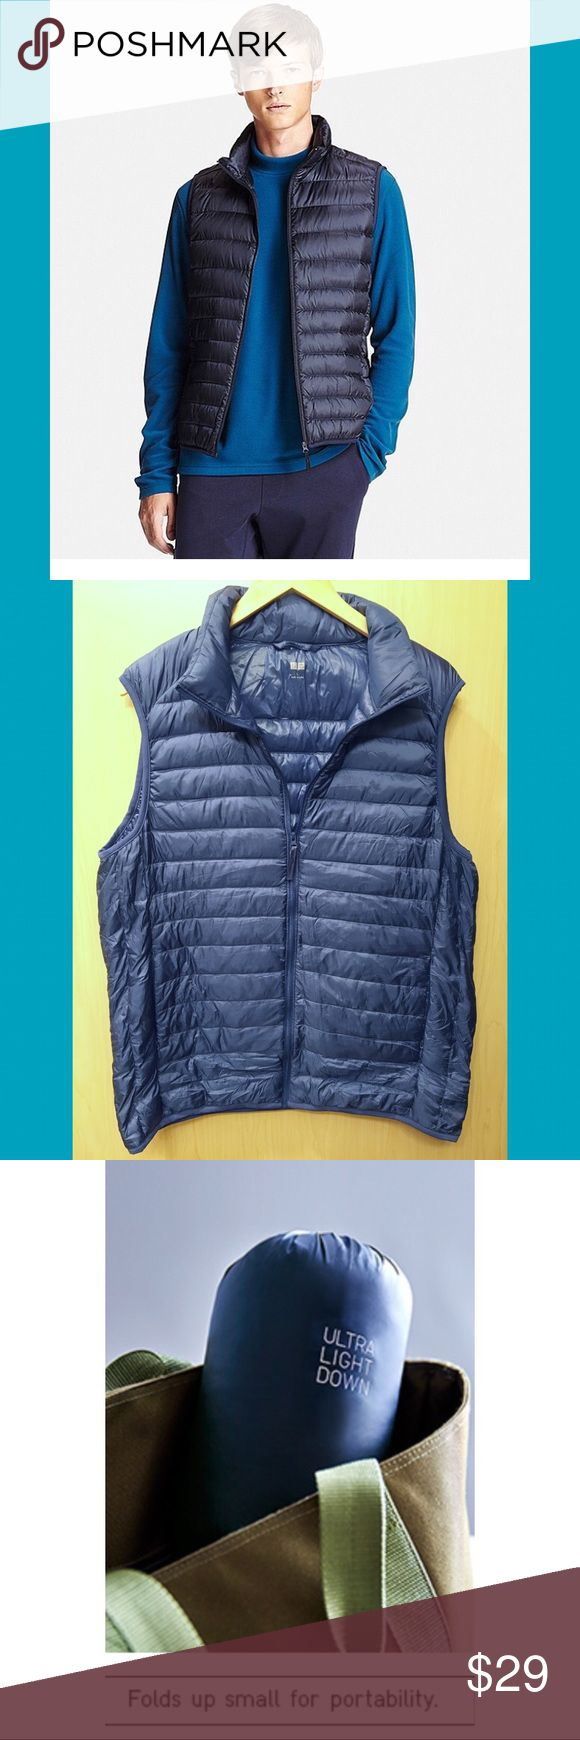 Uniqlo Men's Down Vest Navy blue lightweight vest in men's size Large. Fits more like a roomier medium. Never been worn, comes with small packing bag. Perfect for summer Camping trips ☀️ Uniqlo Jackets & Coats Vests